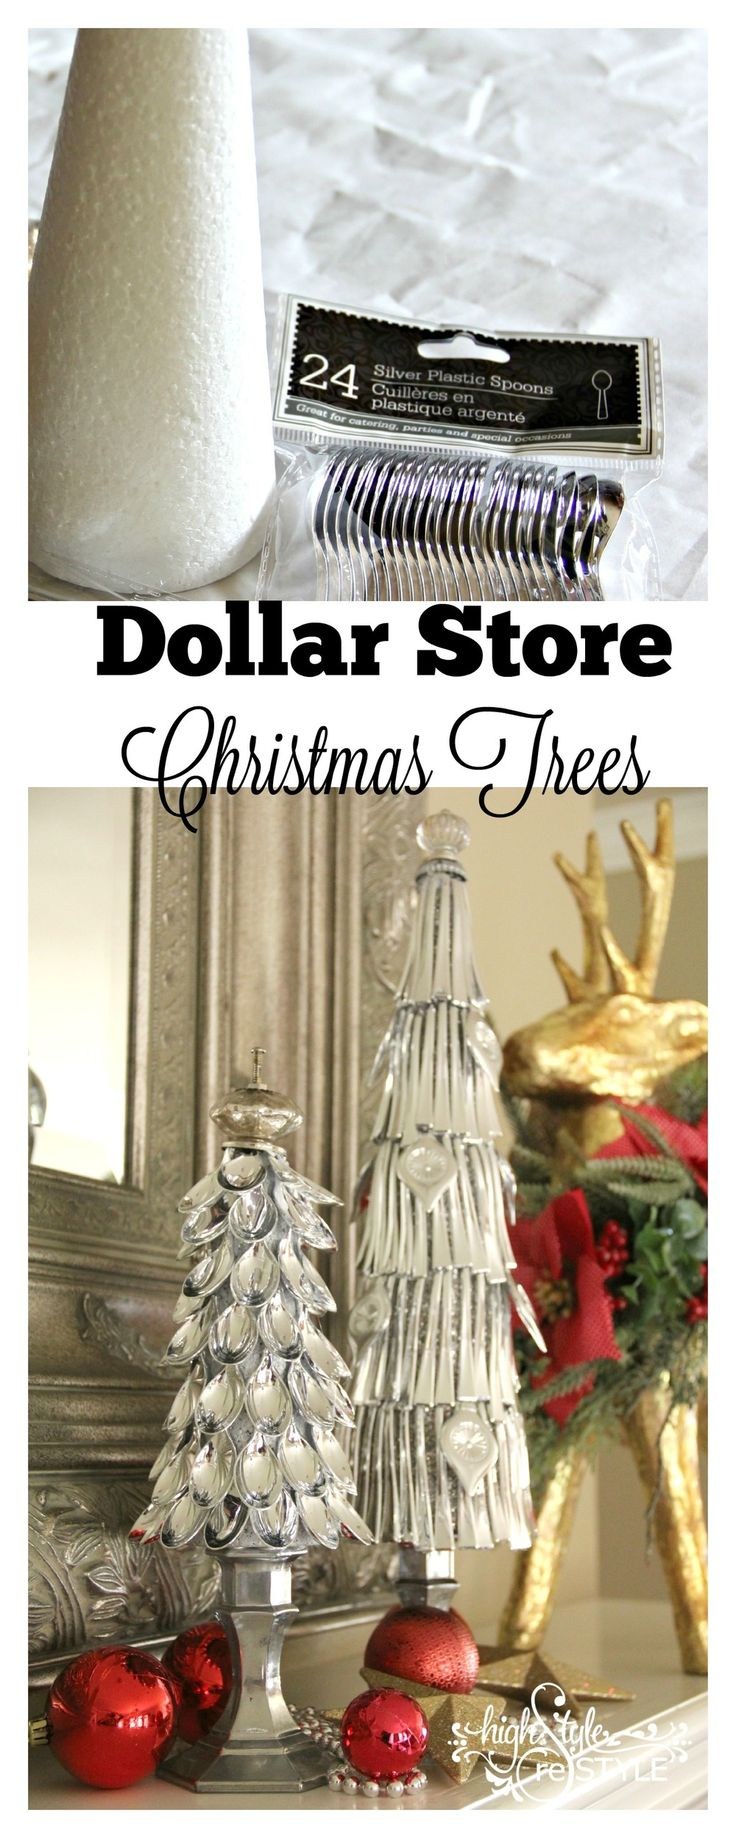 Have you ever come across a crafty idea that is so fantastic you immediately start planning ways to make your own version? That's what happened to me when I stumbled across a post by My Husband Has Too Many Hobbies on making Christmas trees out of plastic silver spoons. Such a simple, brilliant and beautiful holiday decoration on the cheap! I headed to the Dollar Tree to pick up supplies and the ideas were swirling with possibilities of variations. To make your own version(s), here's...